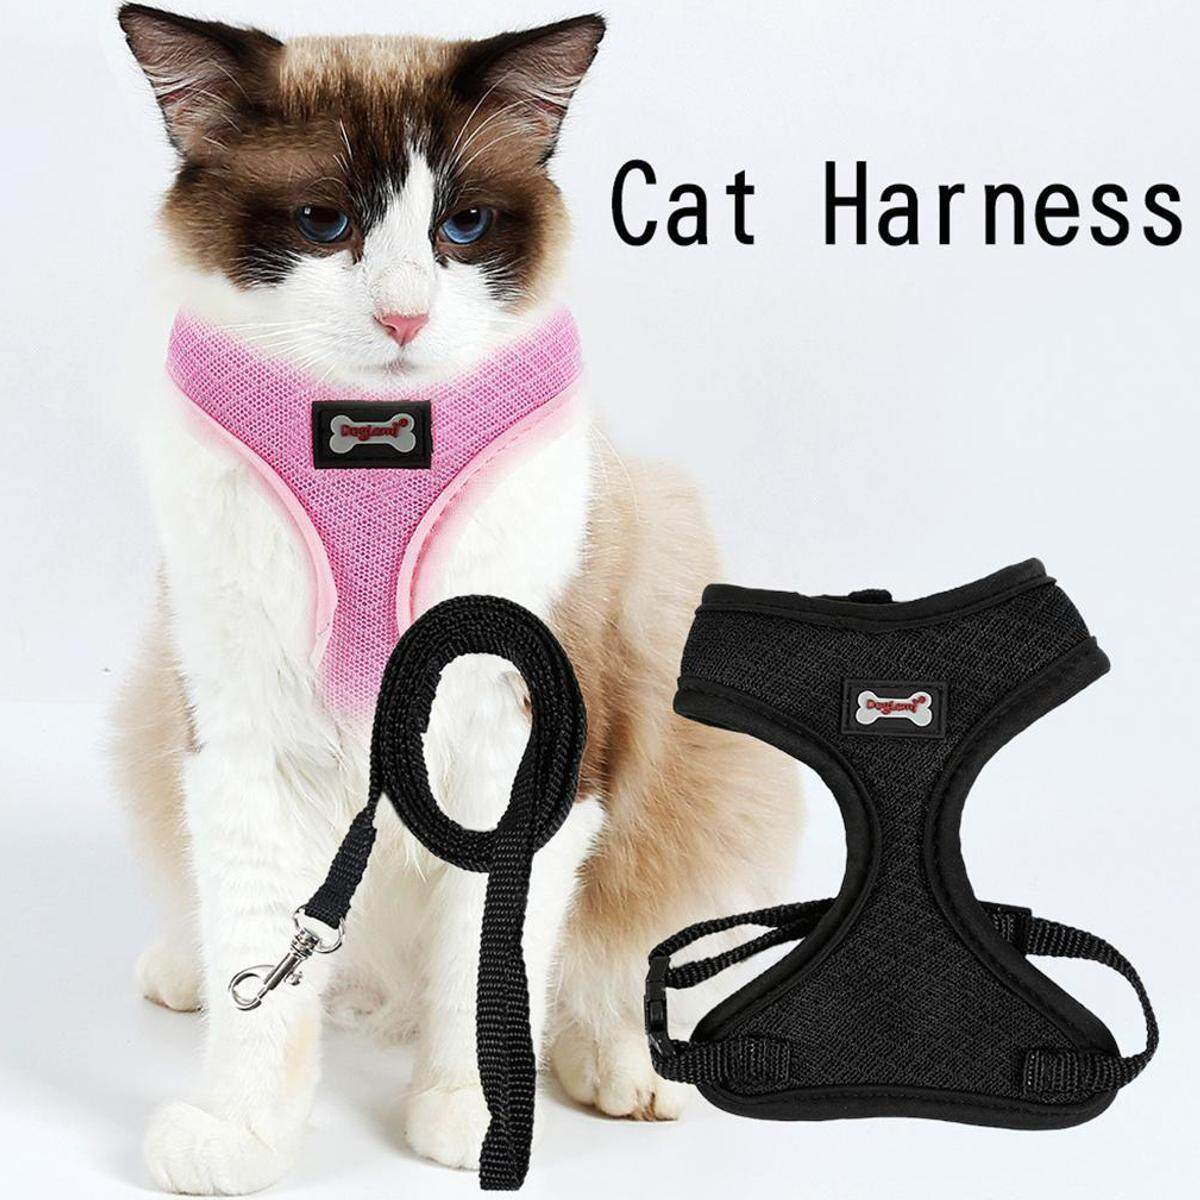 Adjustable Pet Dog Cat Lead Leash And Soft Mesh Walking Harness Vest Apparel By Ferry.